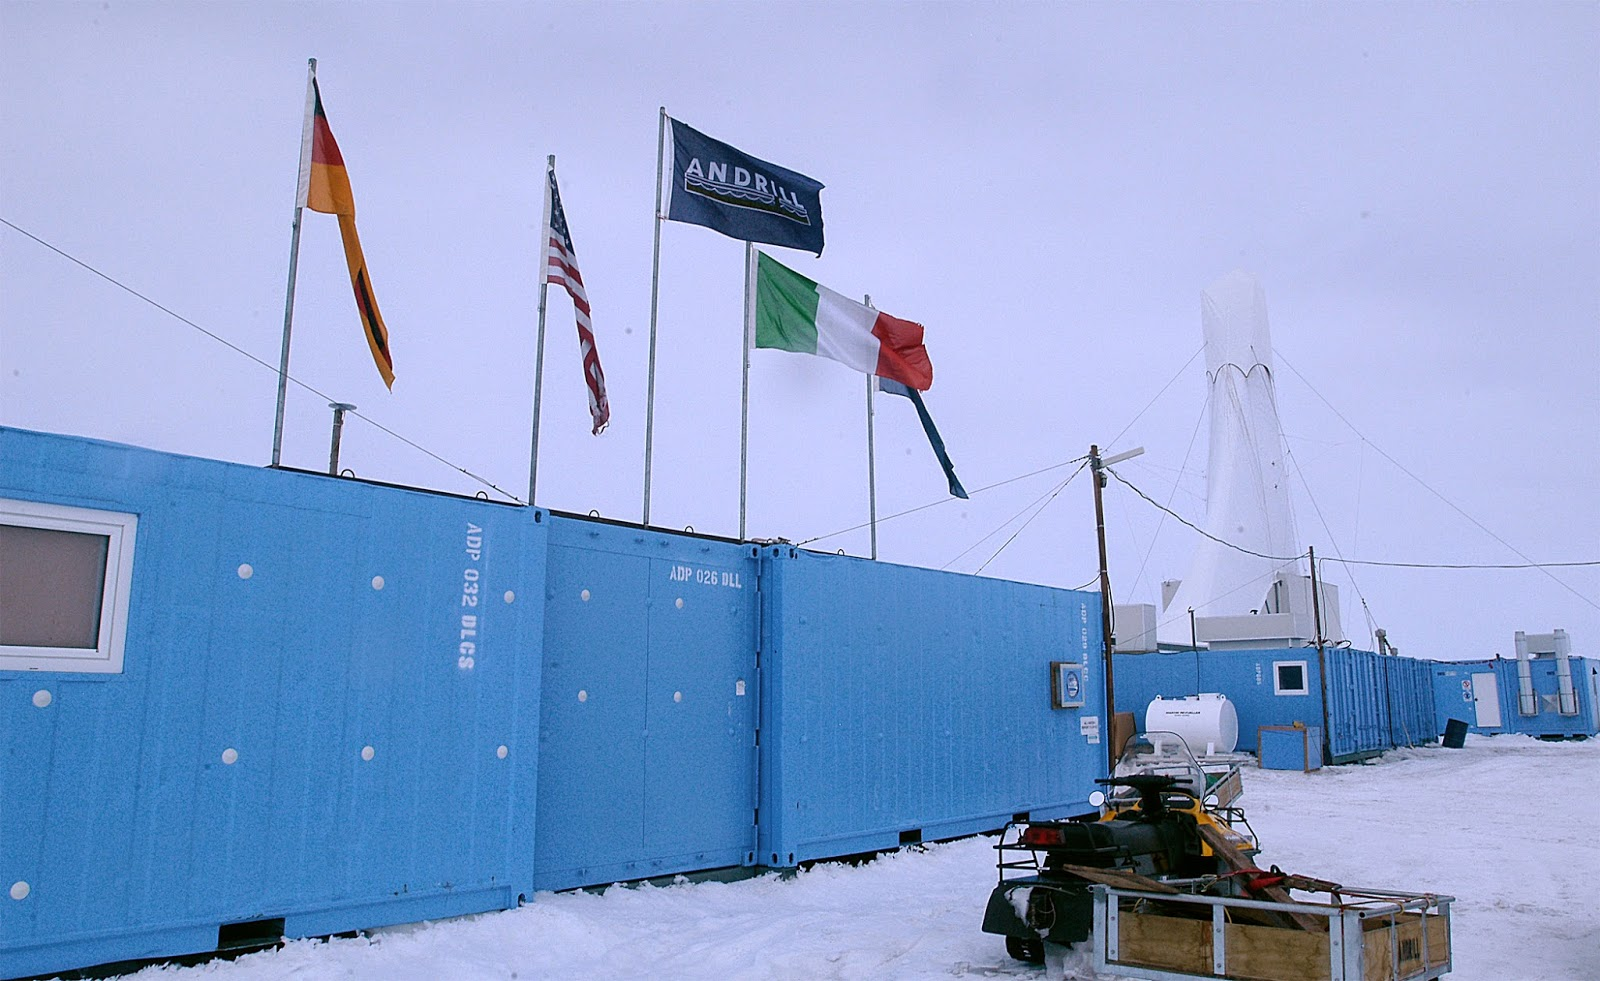 photo of the andrill drilling area